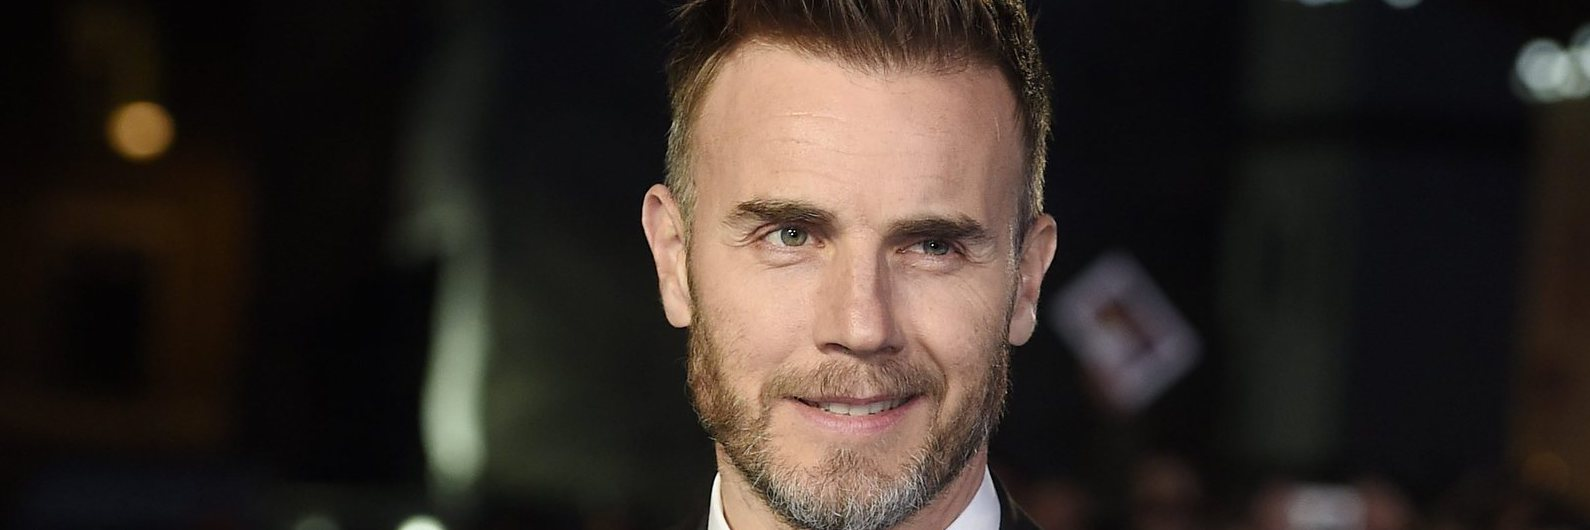 "Gary Barlow, dos Take That, vai participar no próximo ""Star Wars"""